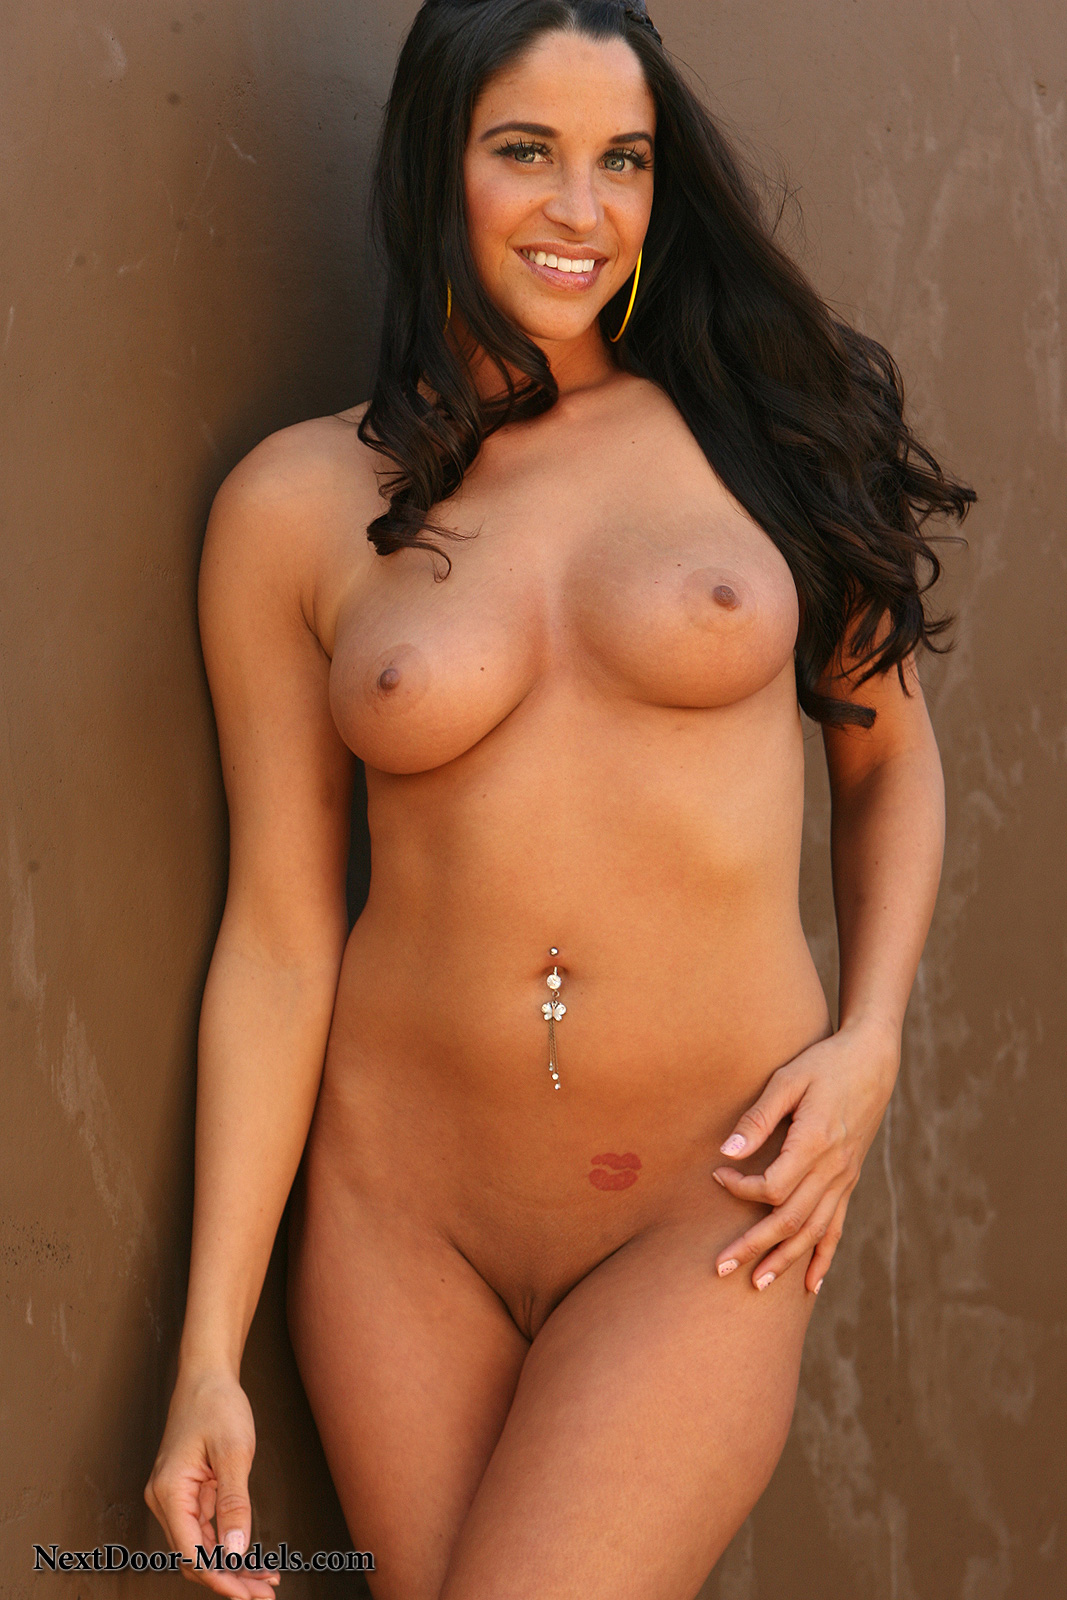 proudly showing off her belly button ring adrianna